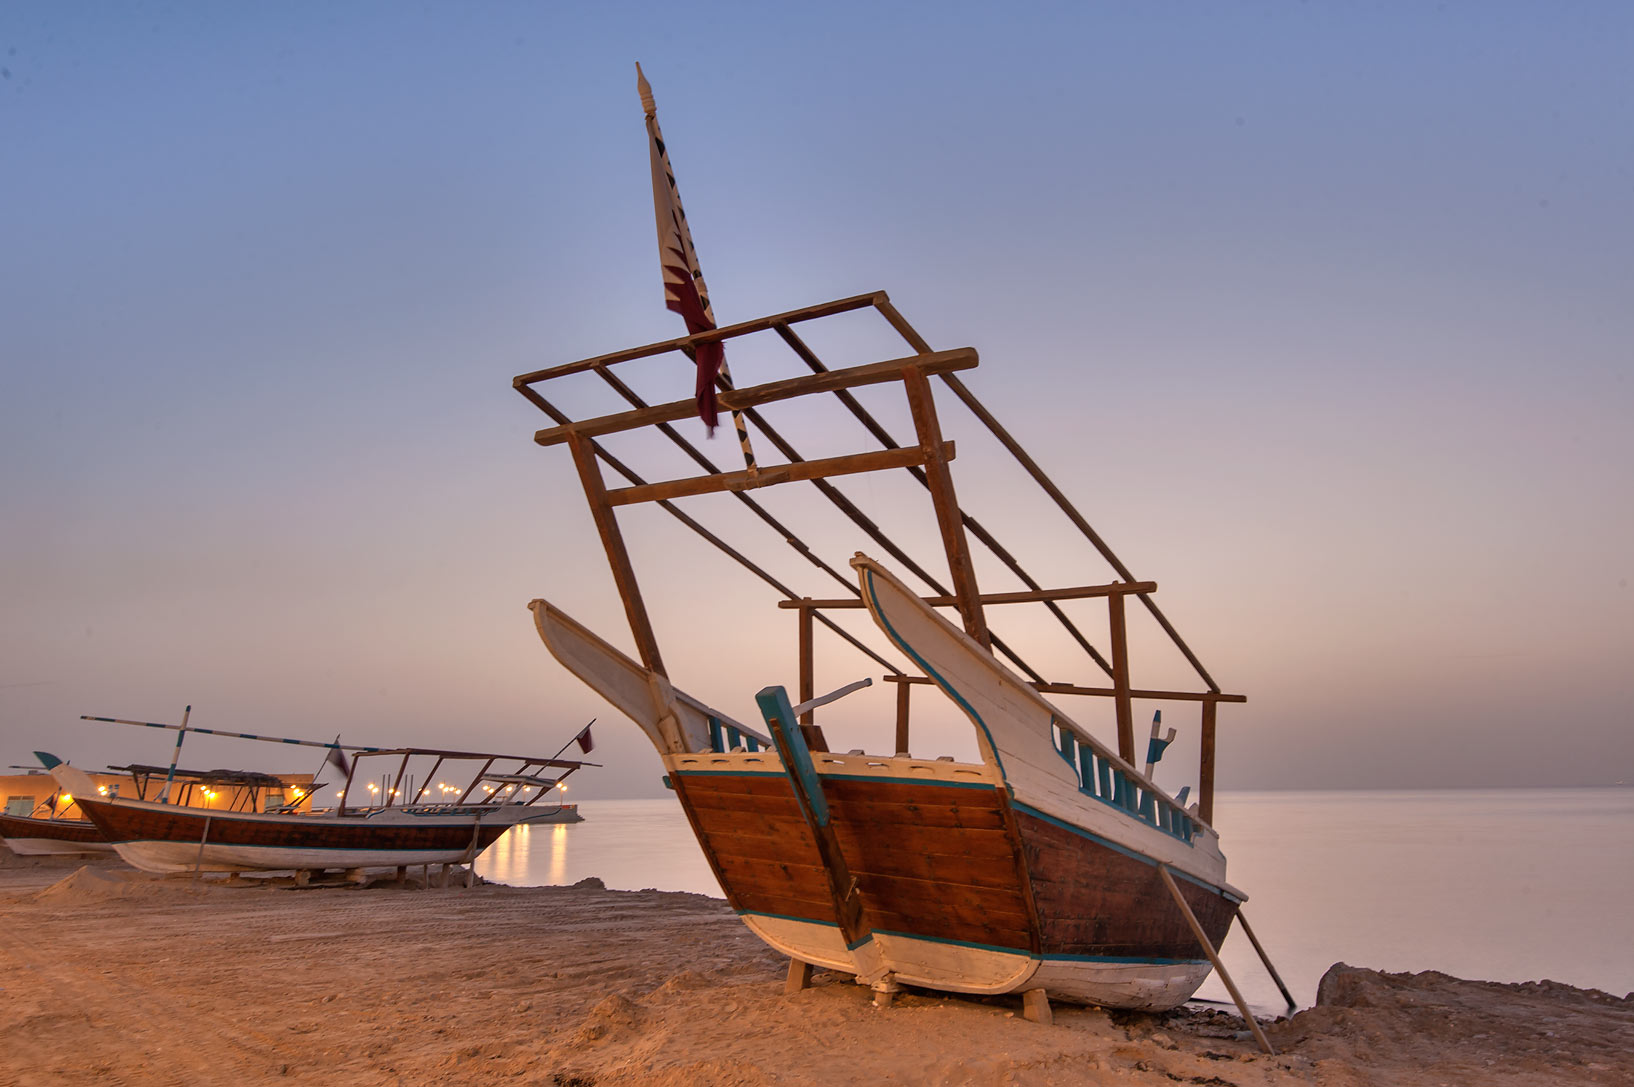 Dhow (fishing boat) on a beach in Al Wakra...Souq Waqif in Al Wakrah). Qatar